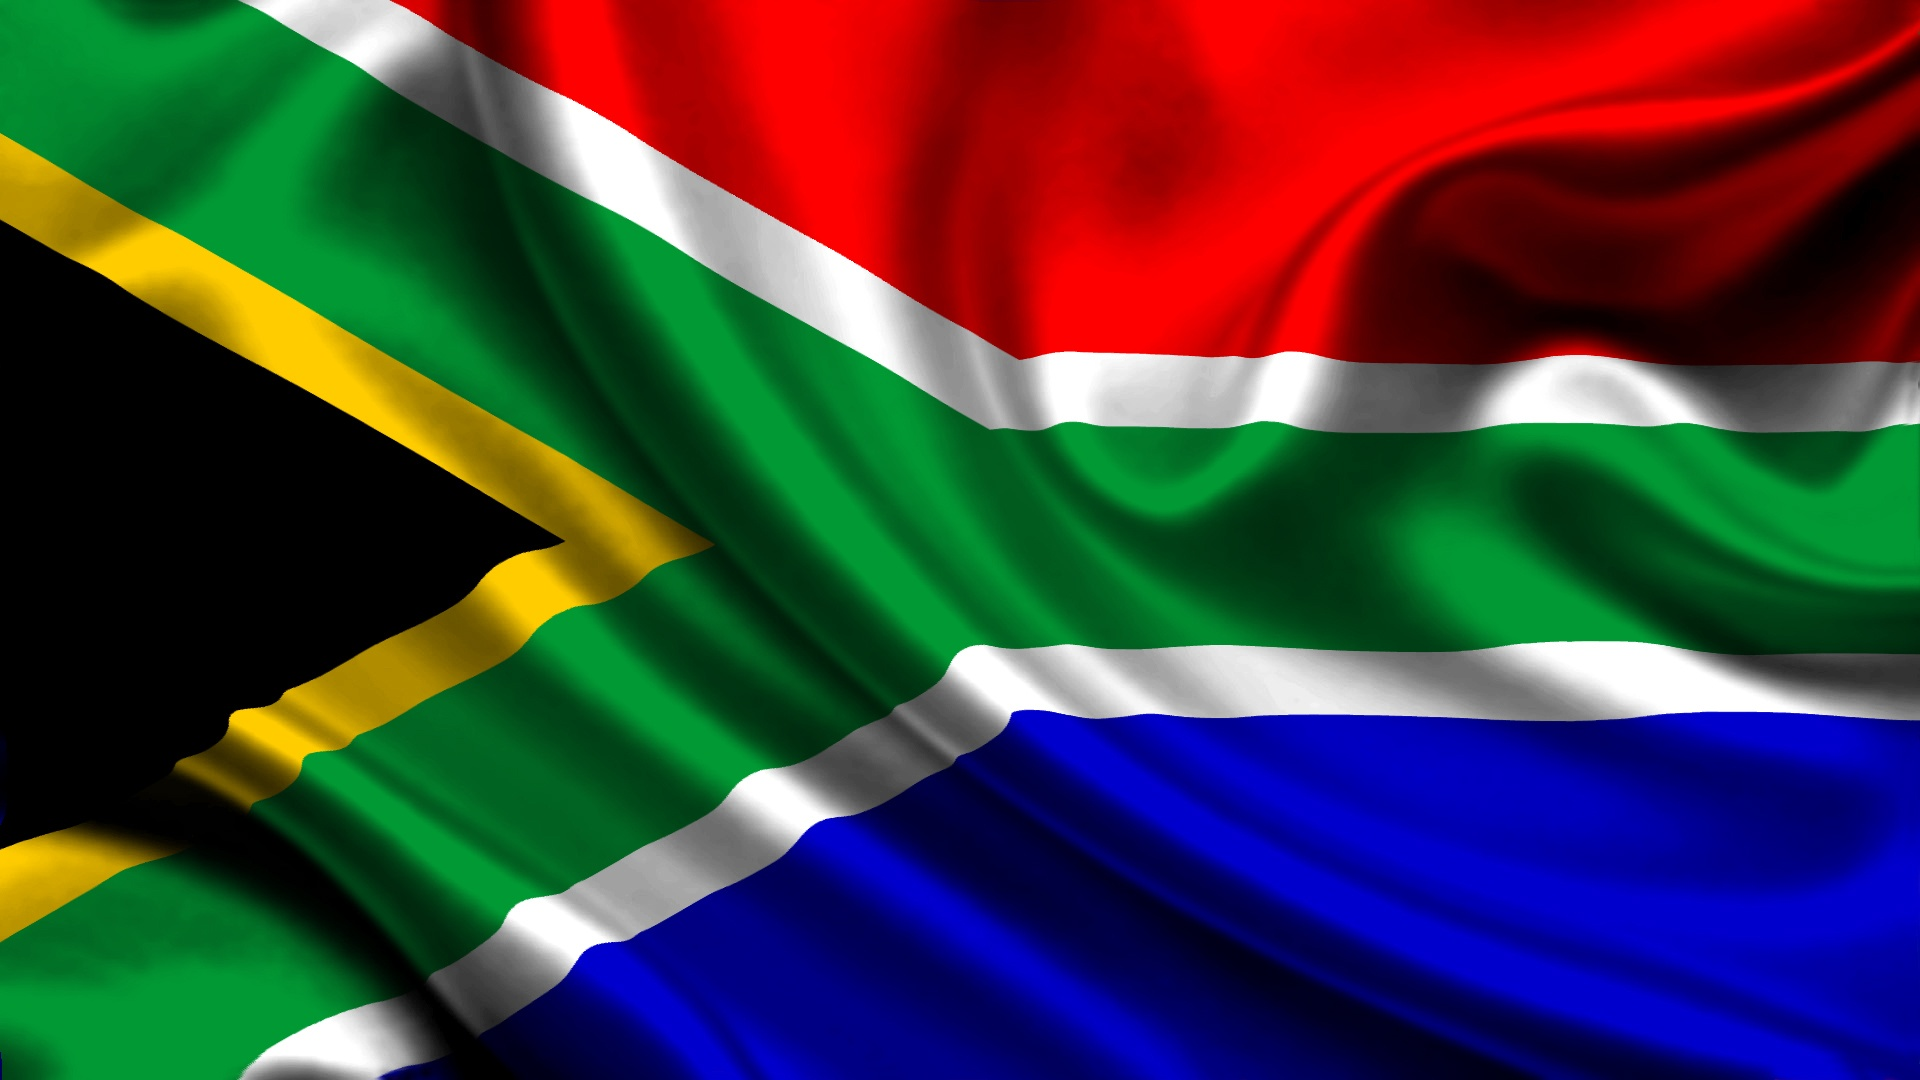 flag-of-south-africa-1920x1080